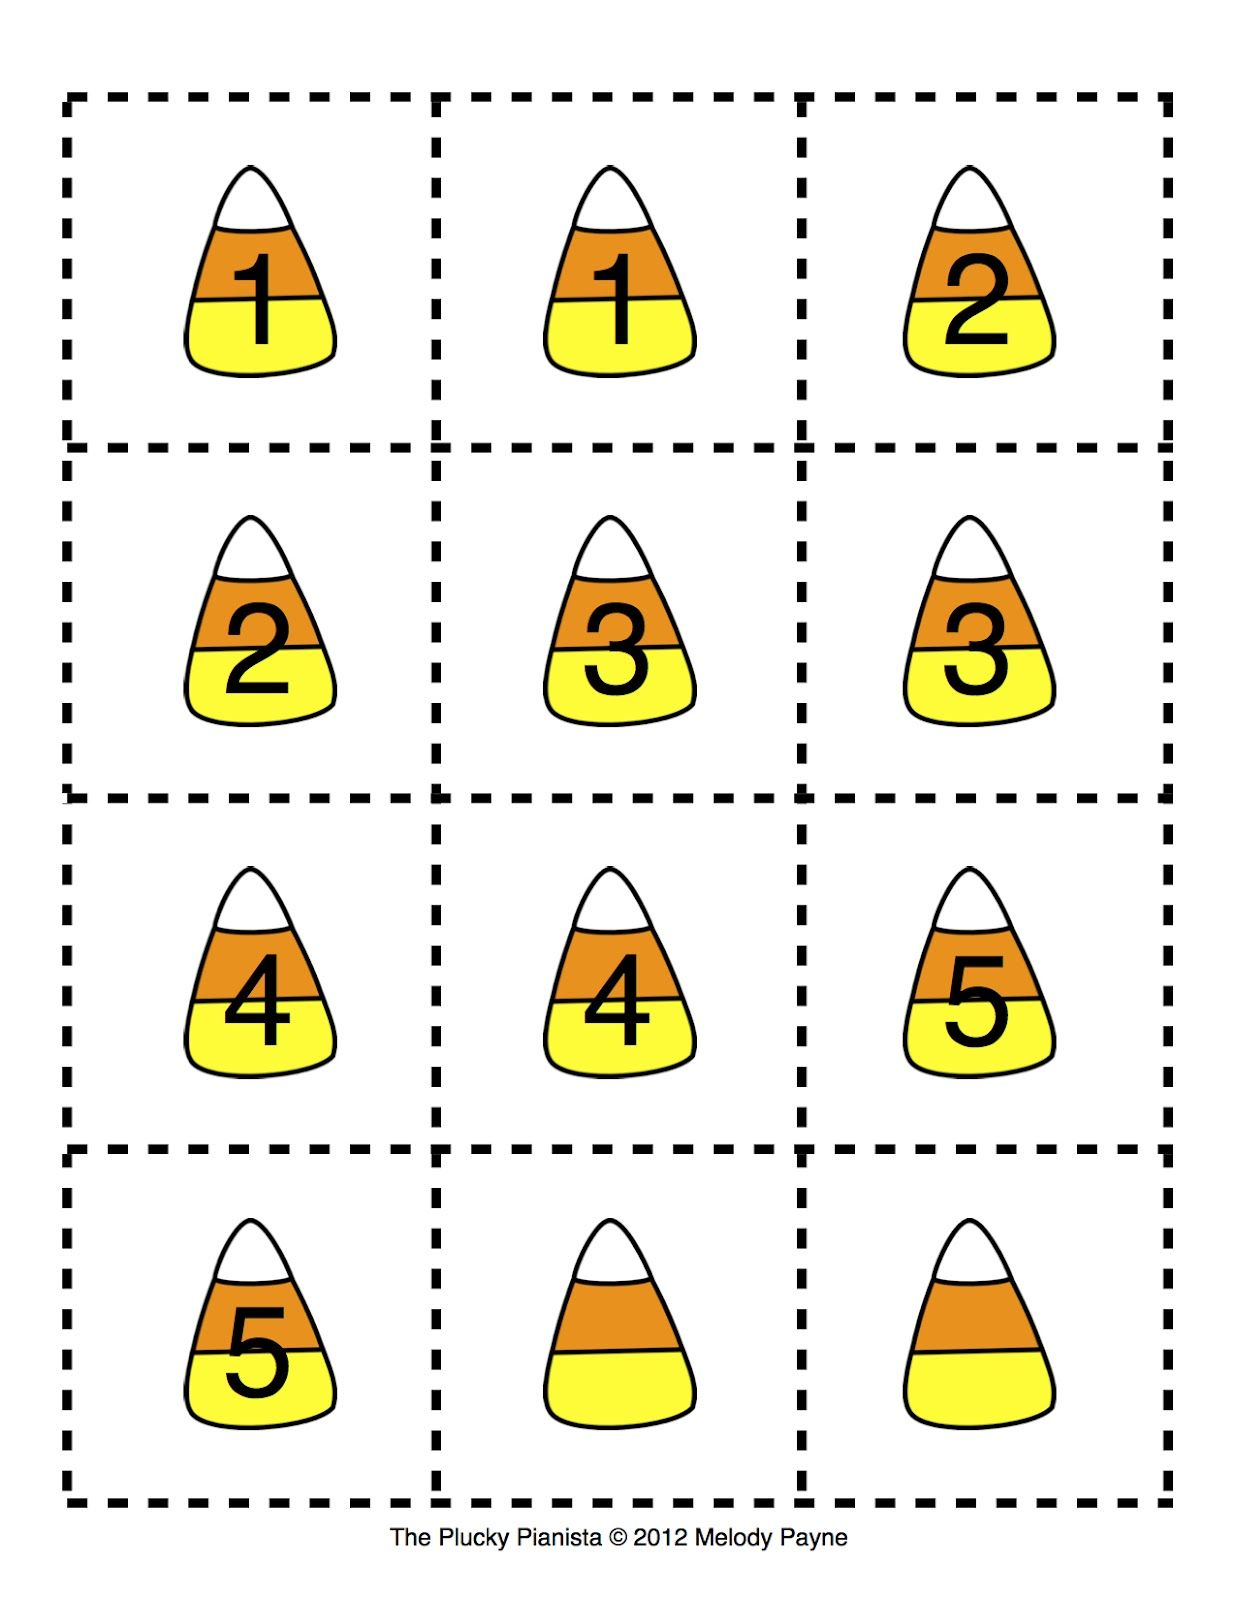 Learn Numerals With Candy Corn